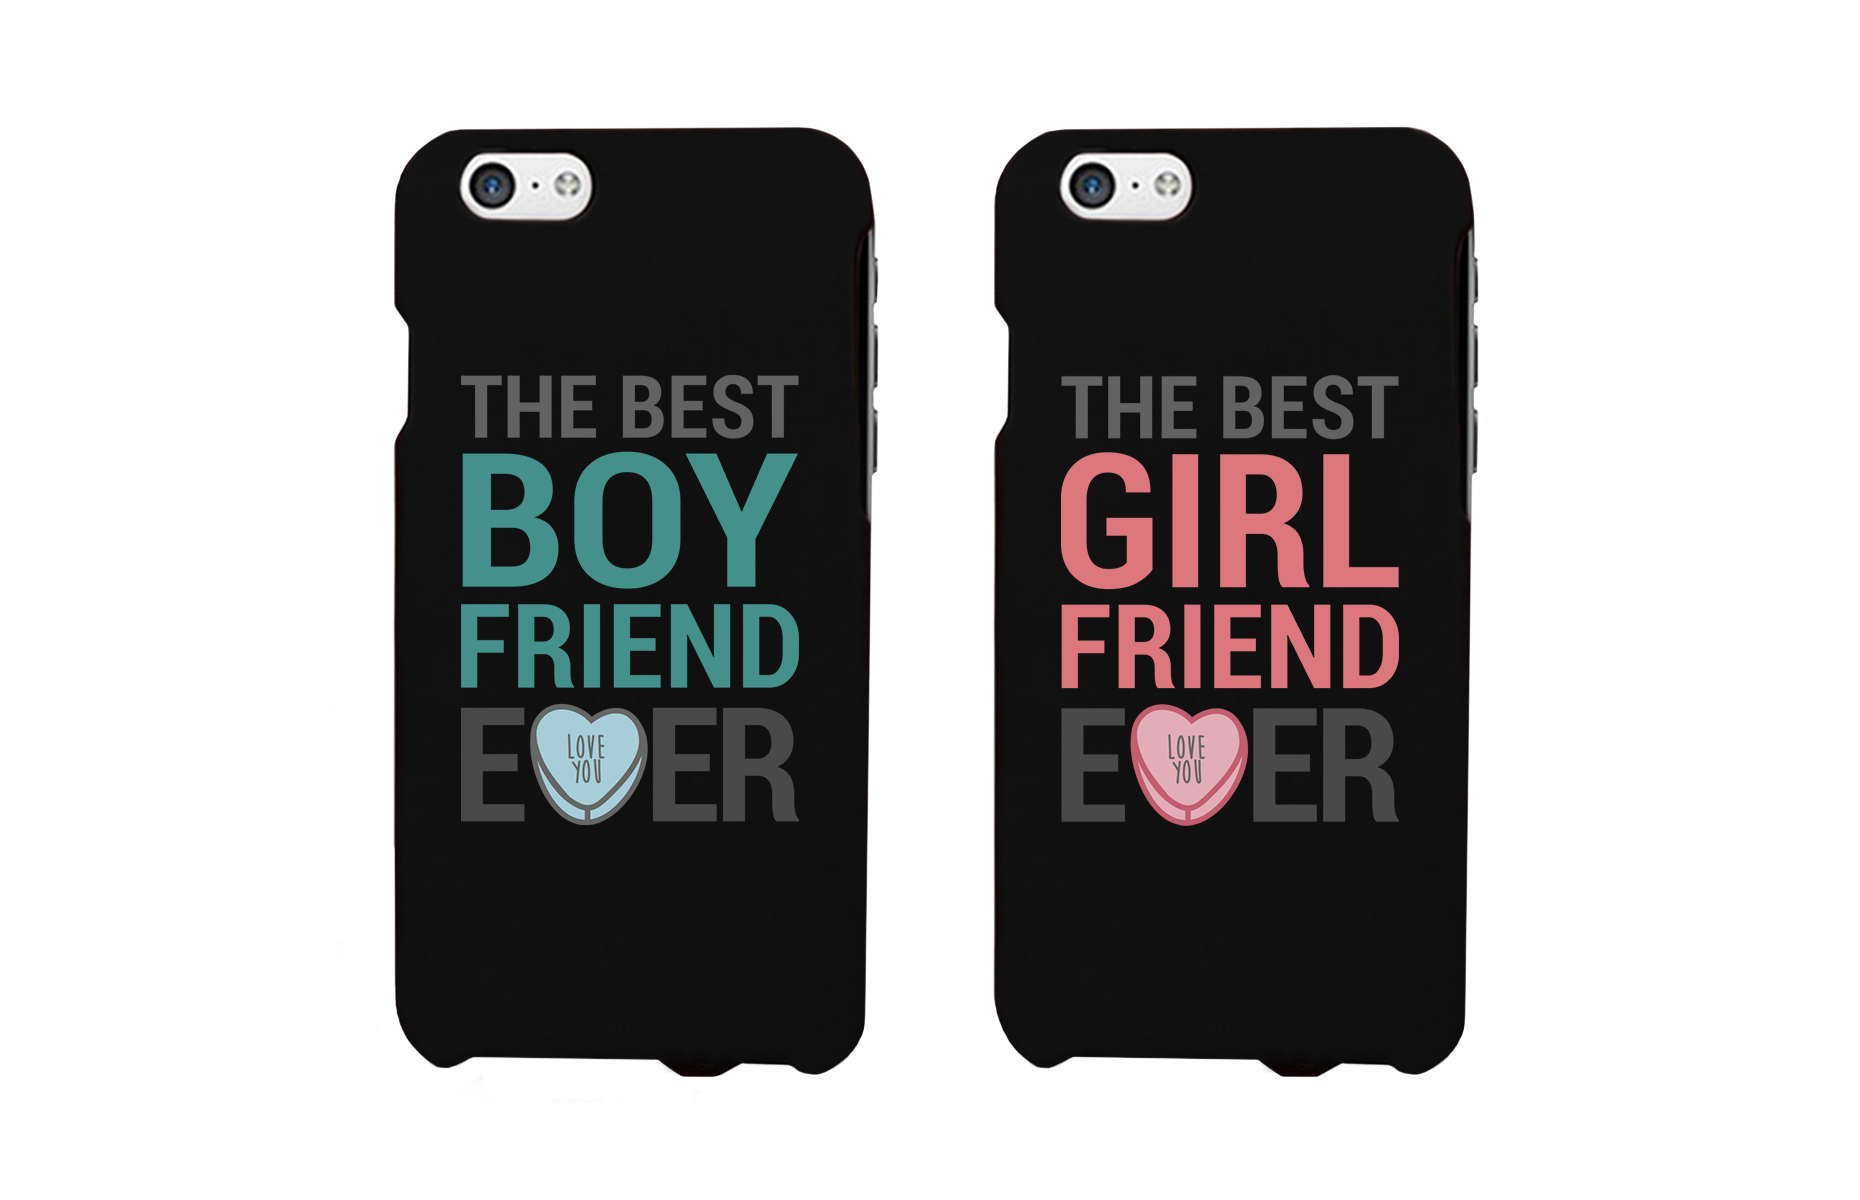 b3a409cc89 Best Boyfriend and Girlfriend mix-and-match phone cases by 365inlove  #valentinesday #valentinesdaygift #bae #boyfriend #girlfriend #couples  #365inlove